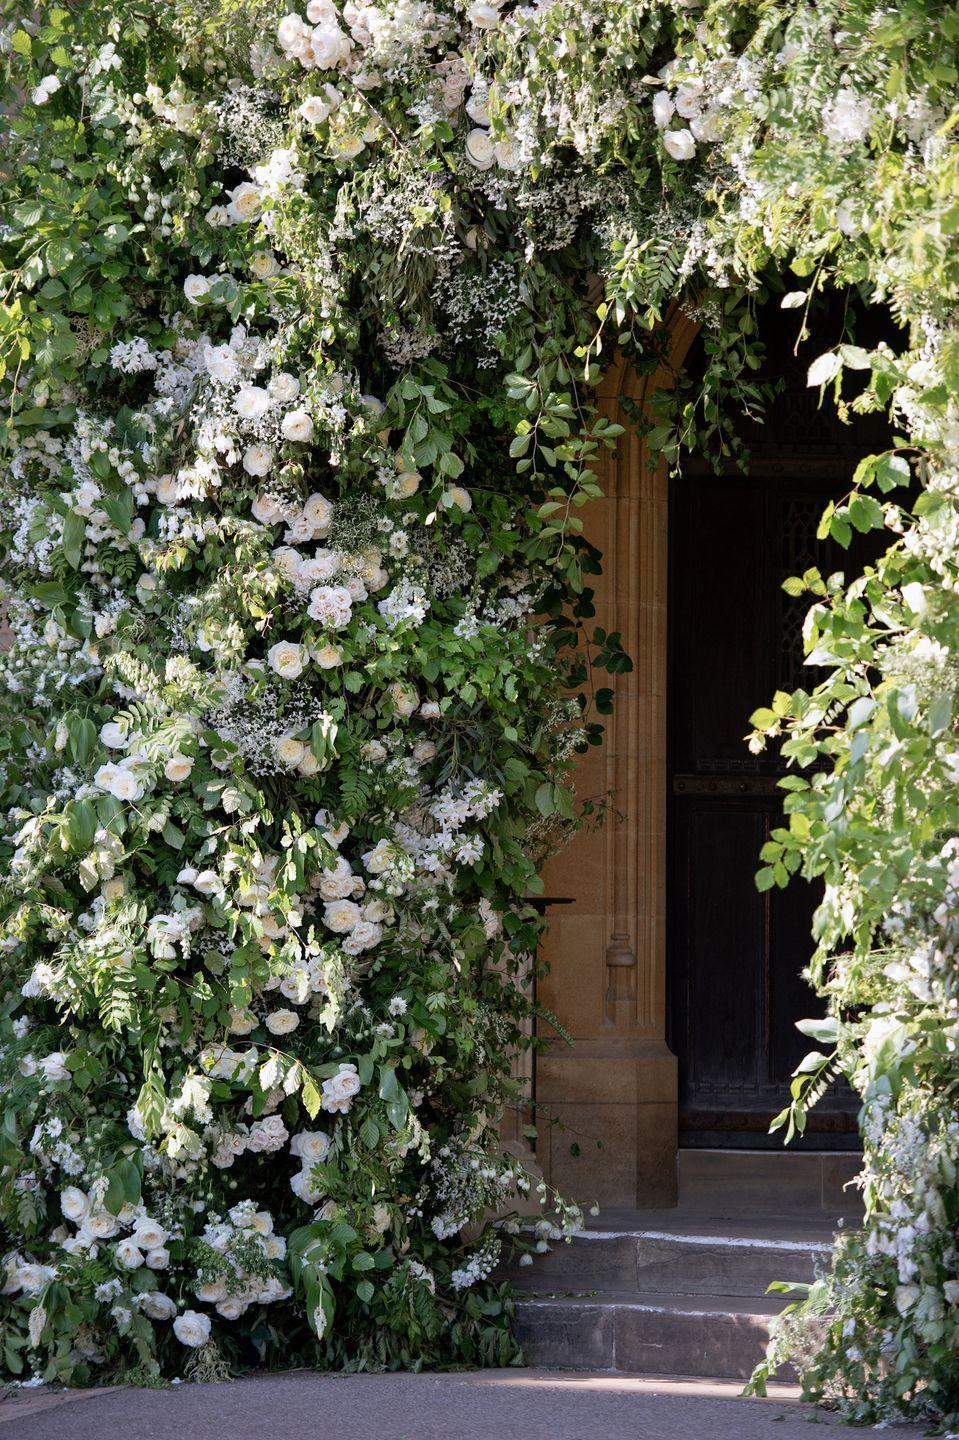 """<p>Having designed the floral displays at <a href=""""https://www.elle.com/uk/meghan-markle-actress/"""" rel=""""nofollow noopener"""" target=""""_blank"""" data-ylk=""""slk:Meghan Markle and Prince Harry"""" class=""""link rapid-noclick-resp"""">Meghan Markle and Prince Harry</a>'s <a href=""""https://www.elle.com/uk/royal-wedding/"""" rel=""""nofollow noopener"""" target=""""_blank"""" data-ylk=""""slk:royal wedding"""" class=""""link rapid-noclick-resp"""">royal wedding</a> in May 2018, it's no surprise Craddock has become one of the most in-demand florists for nuptials in London. After all, who can forget that glorious floral archway decorating the façade of St George's Chapel in Windsor?</p><p>Craddock and her team have also worked with the likes of Dior, MatchesFashion.com, the Victoria & Albert Museum, resulting in her being dubbed the 'Audrey Hepburn of florists' by Elizabeth Young, head of events at Historical Royal Palaces. </p><p>Better yet, Craddock avoids using florist foam (a non-biodegradable plastic product often used in floristry) and works with local growers and, when sourcing flowers overseas, her team ensures the flora comes from fair-trade farms. Florists with conscious – what more could you want? </p><p> Imperial Studios3/11 Imperial RoadLondonSW6 2AG</p><p>Click <a href=""""http://www.philippacraddock.com"""" rel=""""nofollow noopener"""" target=""""_blank"""" data-ylk=""""slk:here"""" class=""""link rapid-noclick-resp"""">here</a> to find out more.</p>"""